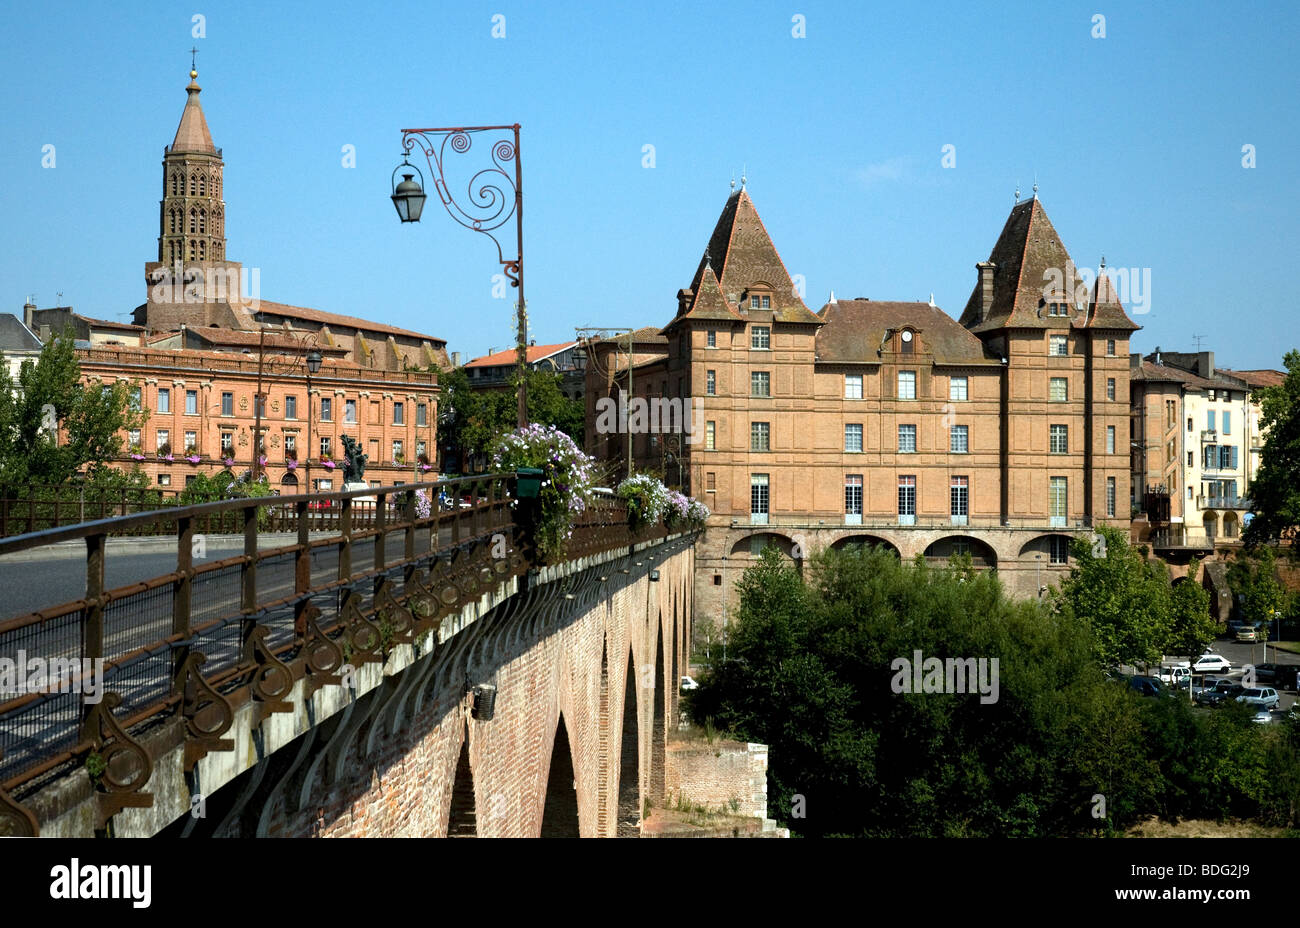 Montauban's Ingres museum, right, with St.Jacques church tower, left, seen across the Pont Vieux bridge spanning - Stock Image